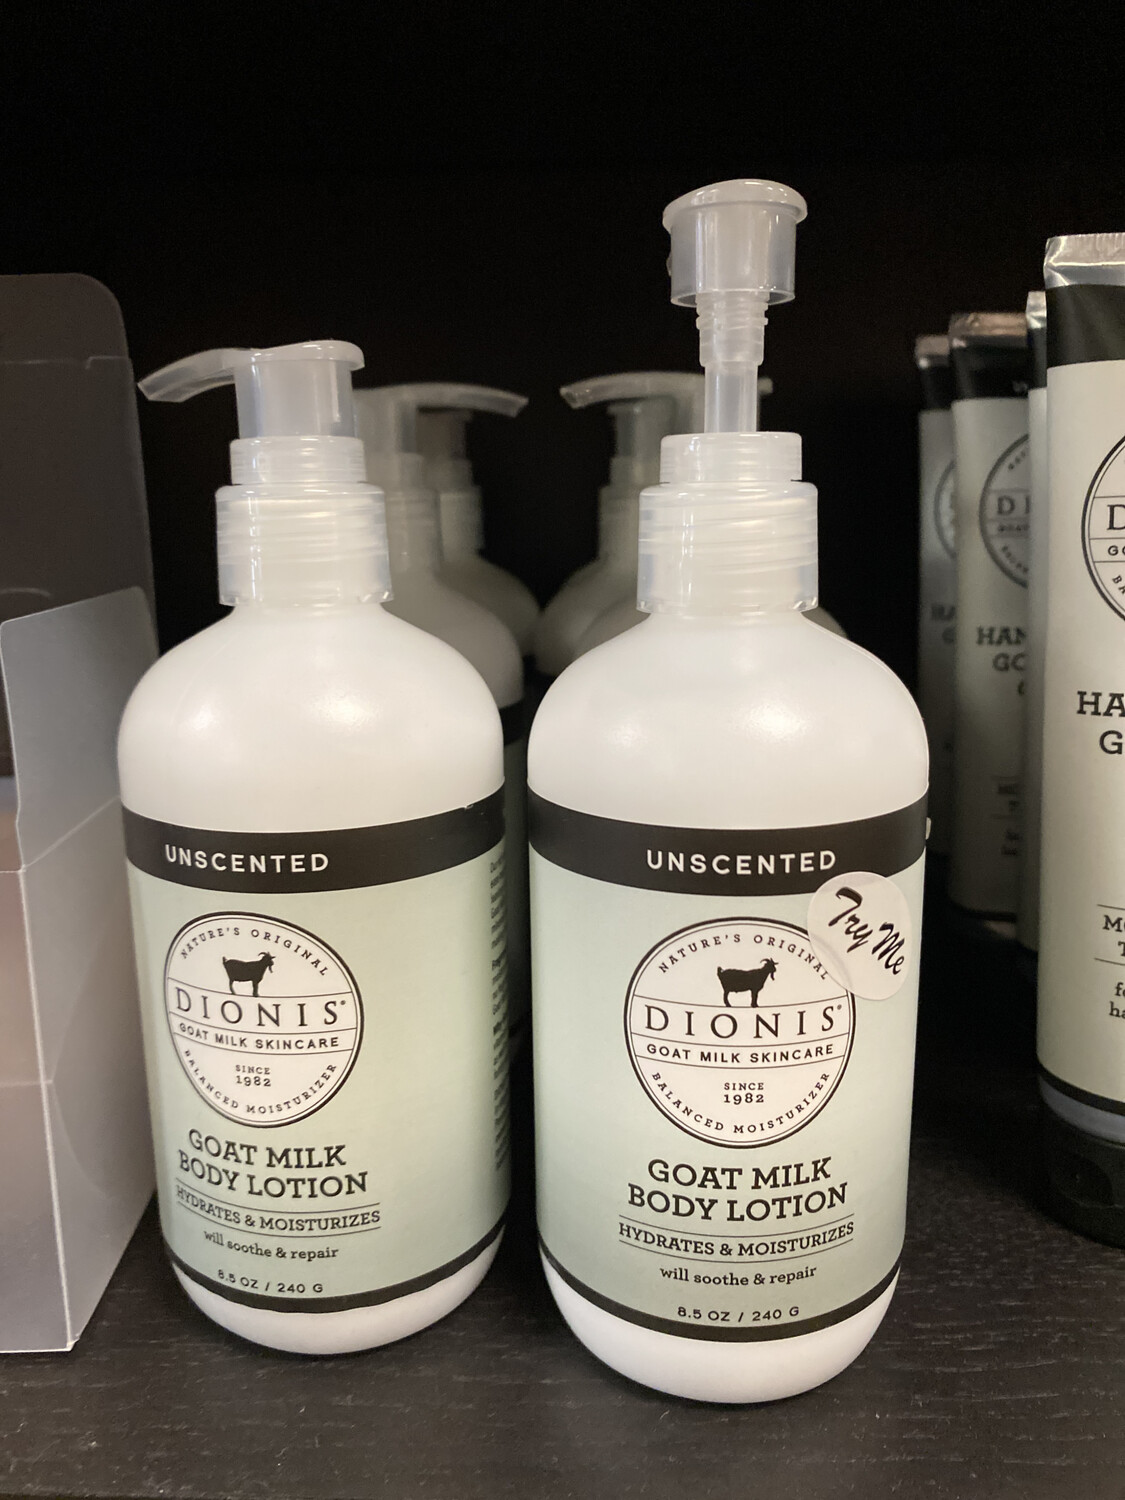 Unscented Goat Milk Body Lotion